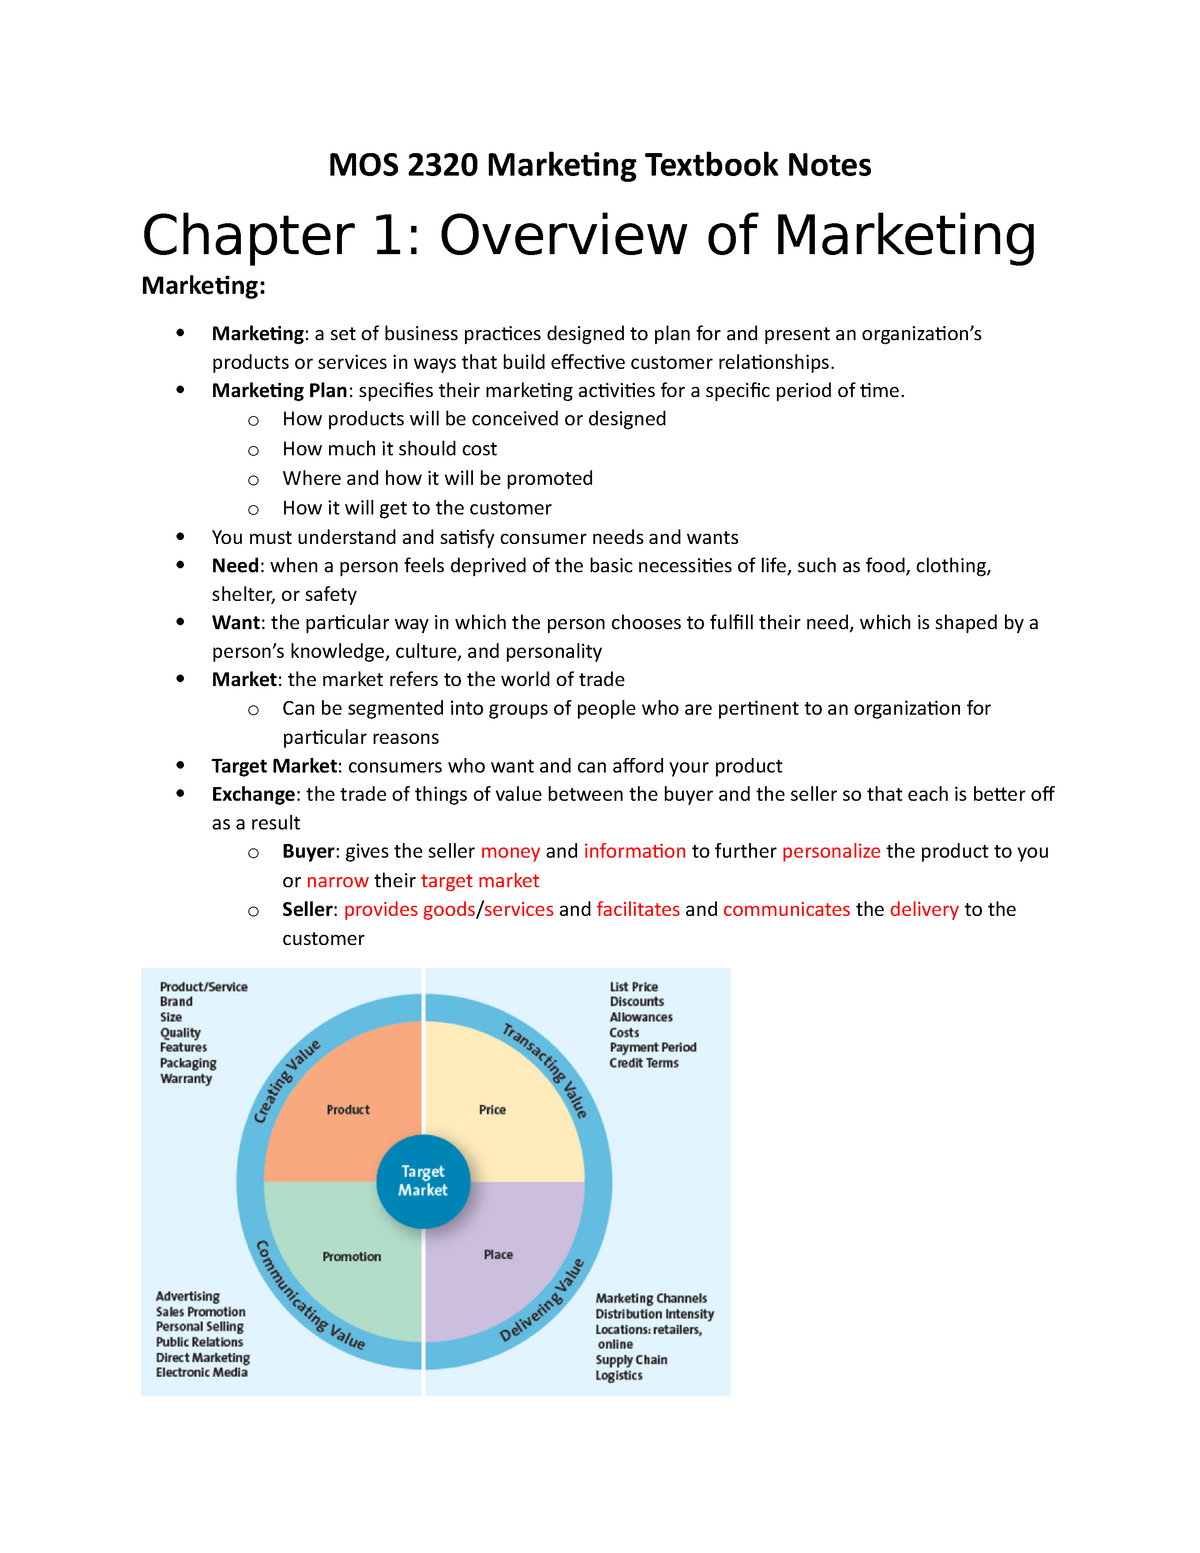 Marketing Midterm Textbook Notes UWO StuDocu